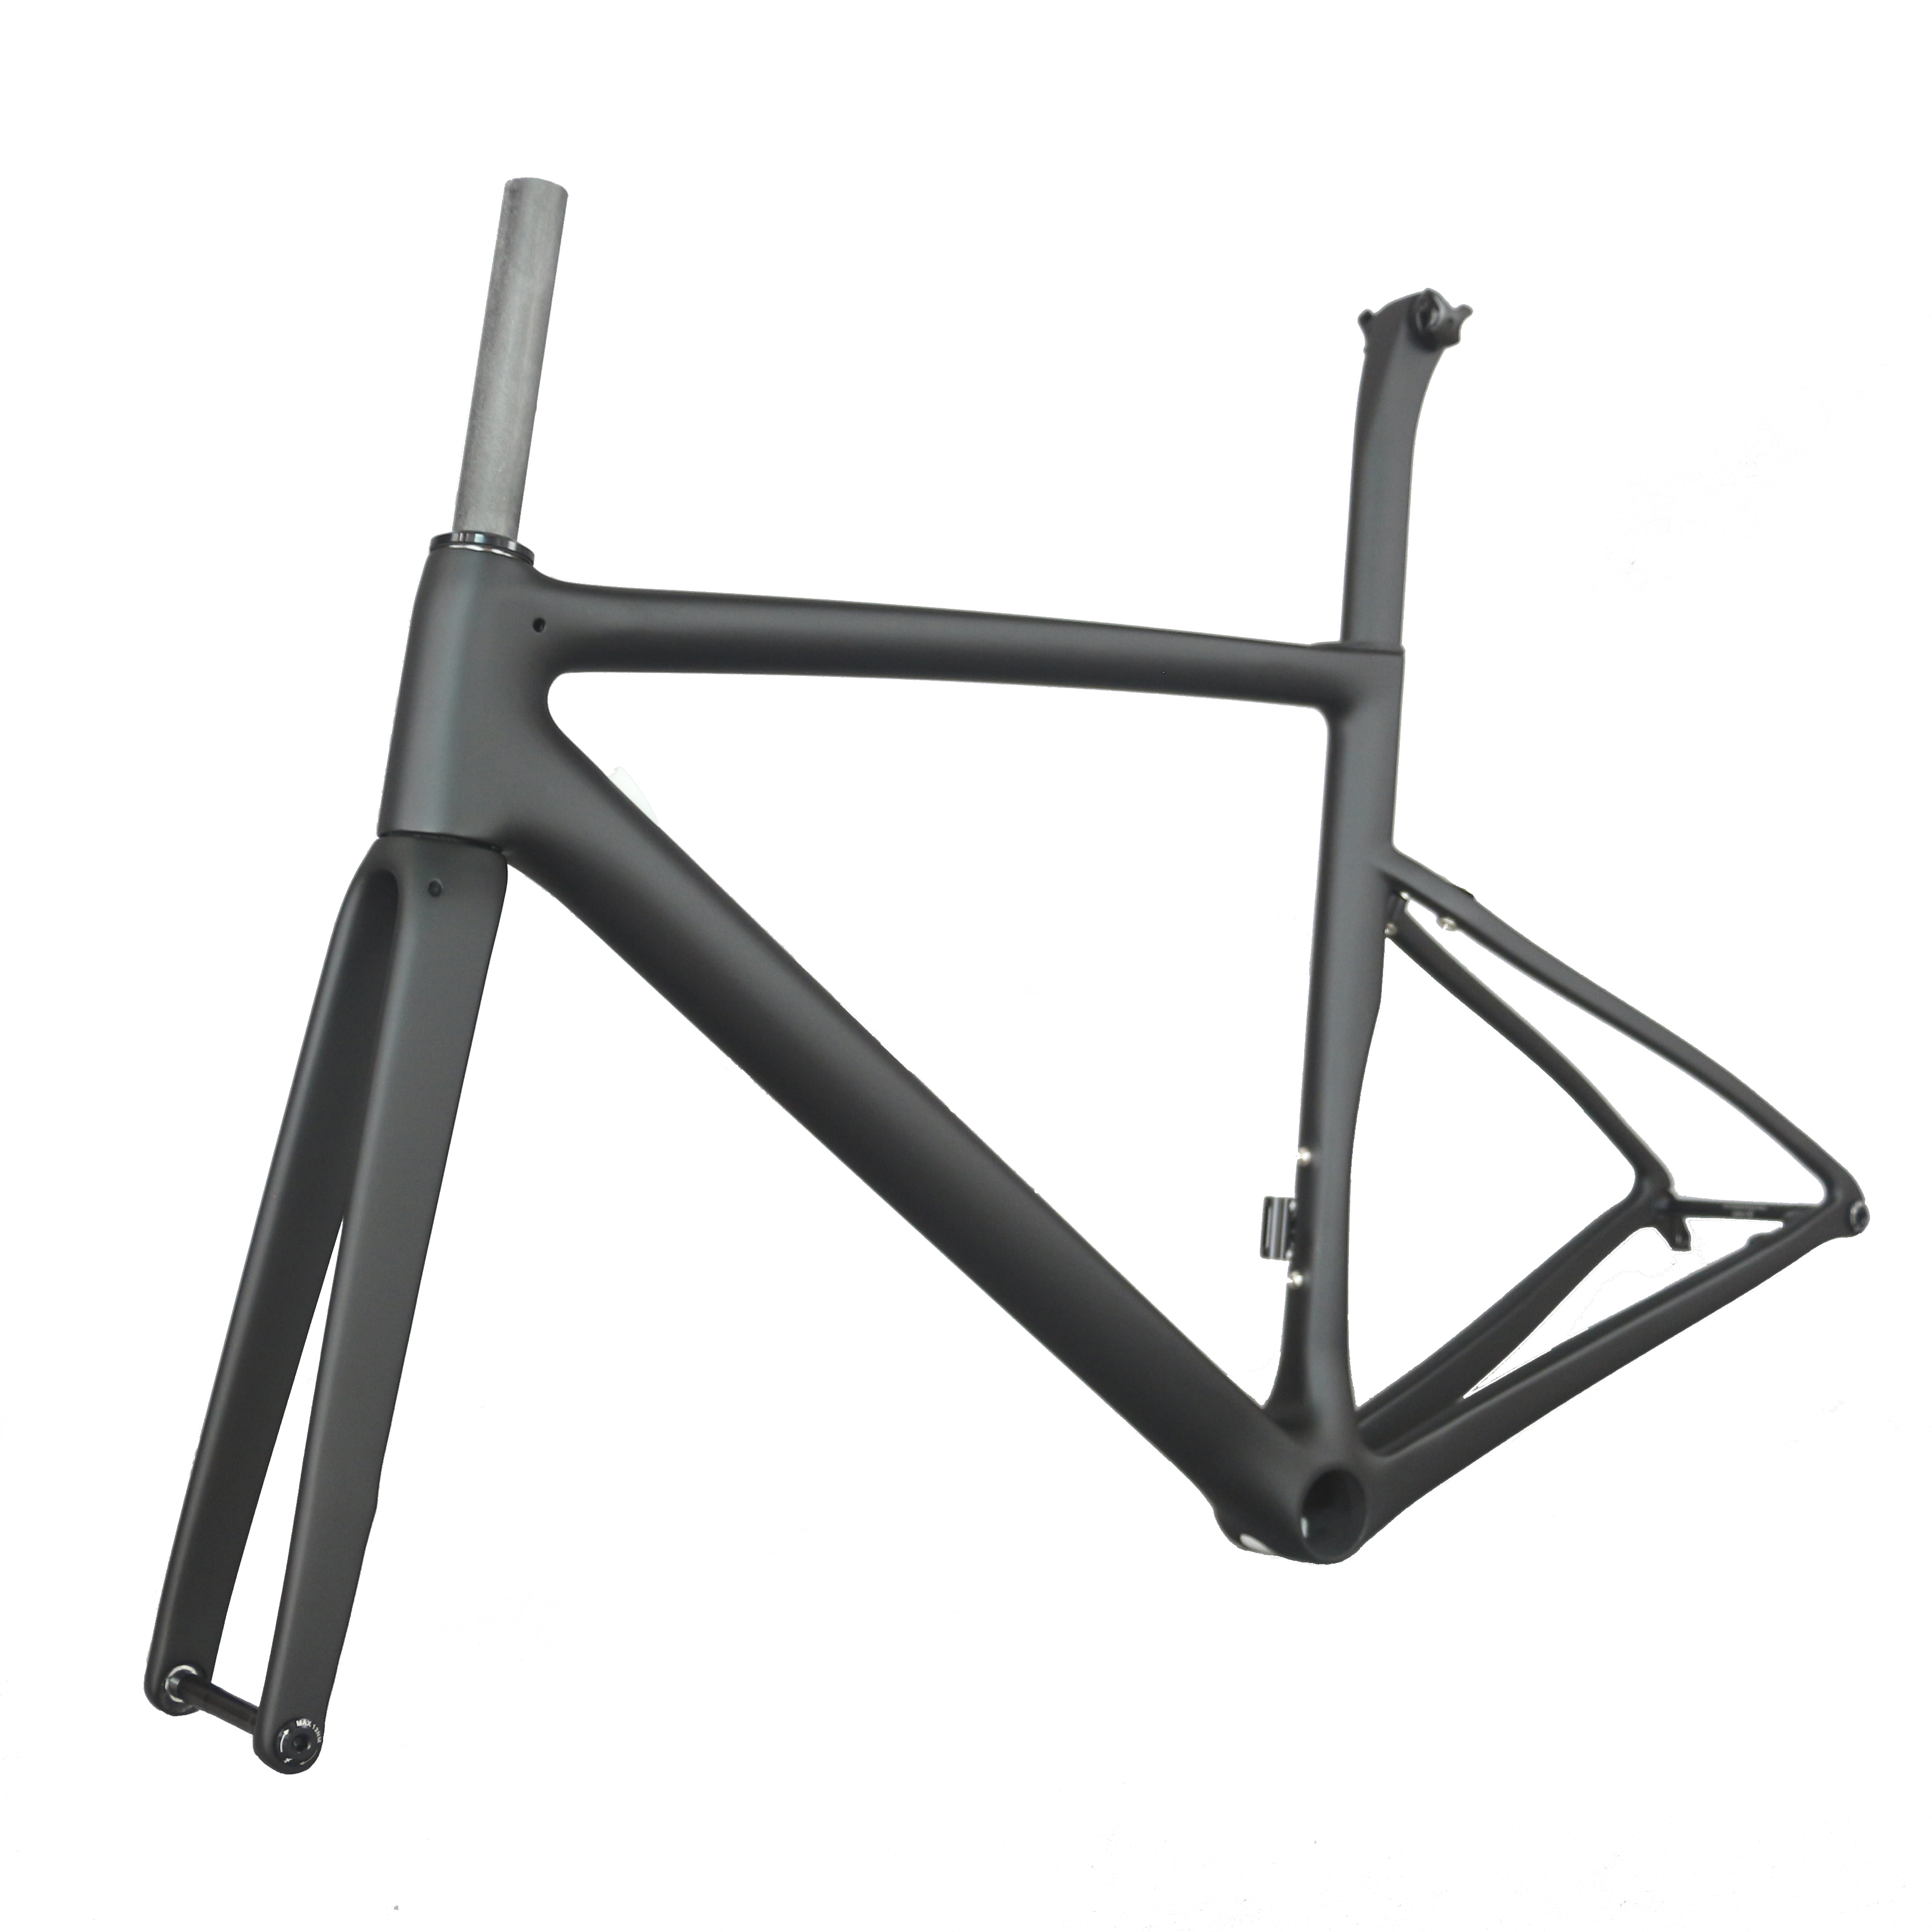 2020 Newest Seraph 700C Road Bicycle Frame PF30 With Axle Shaft 100*142mm Black Matte Finish Disc Brake Carbon Bike Frame TT-X19